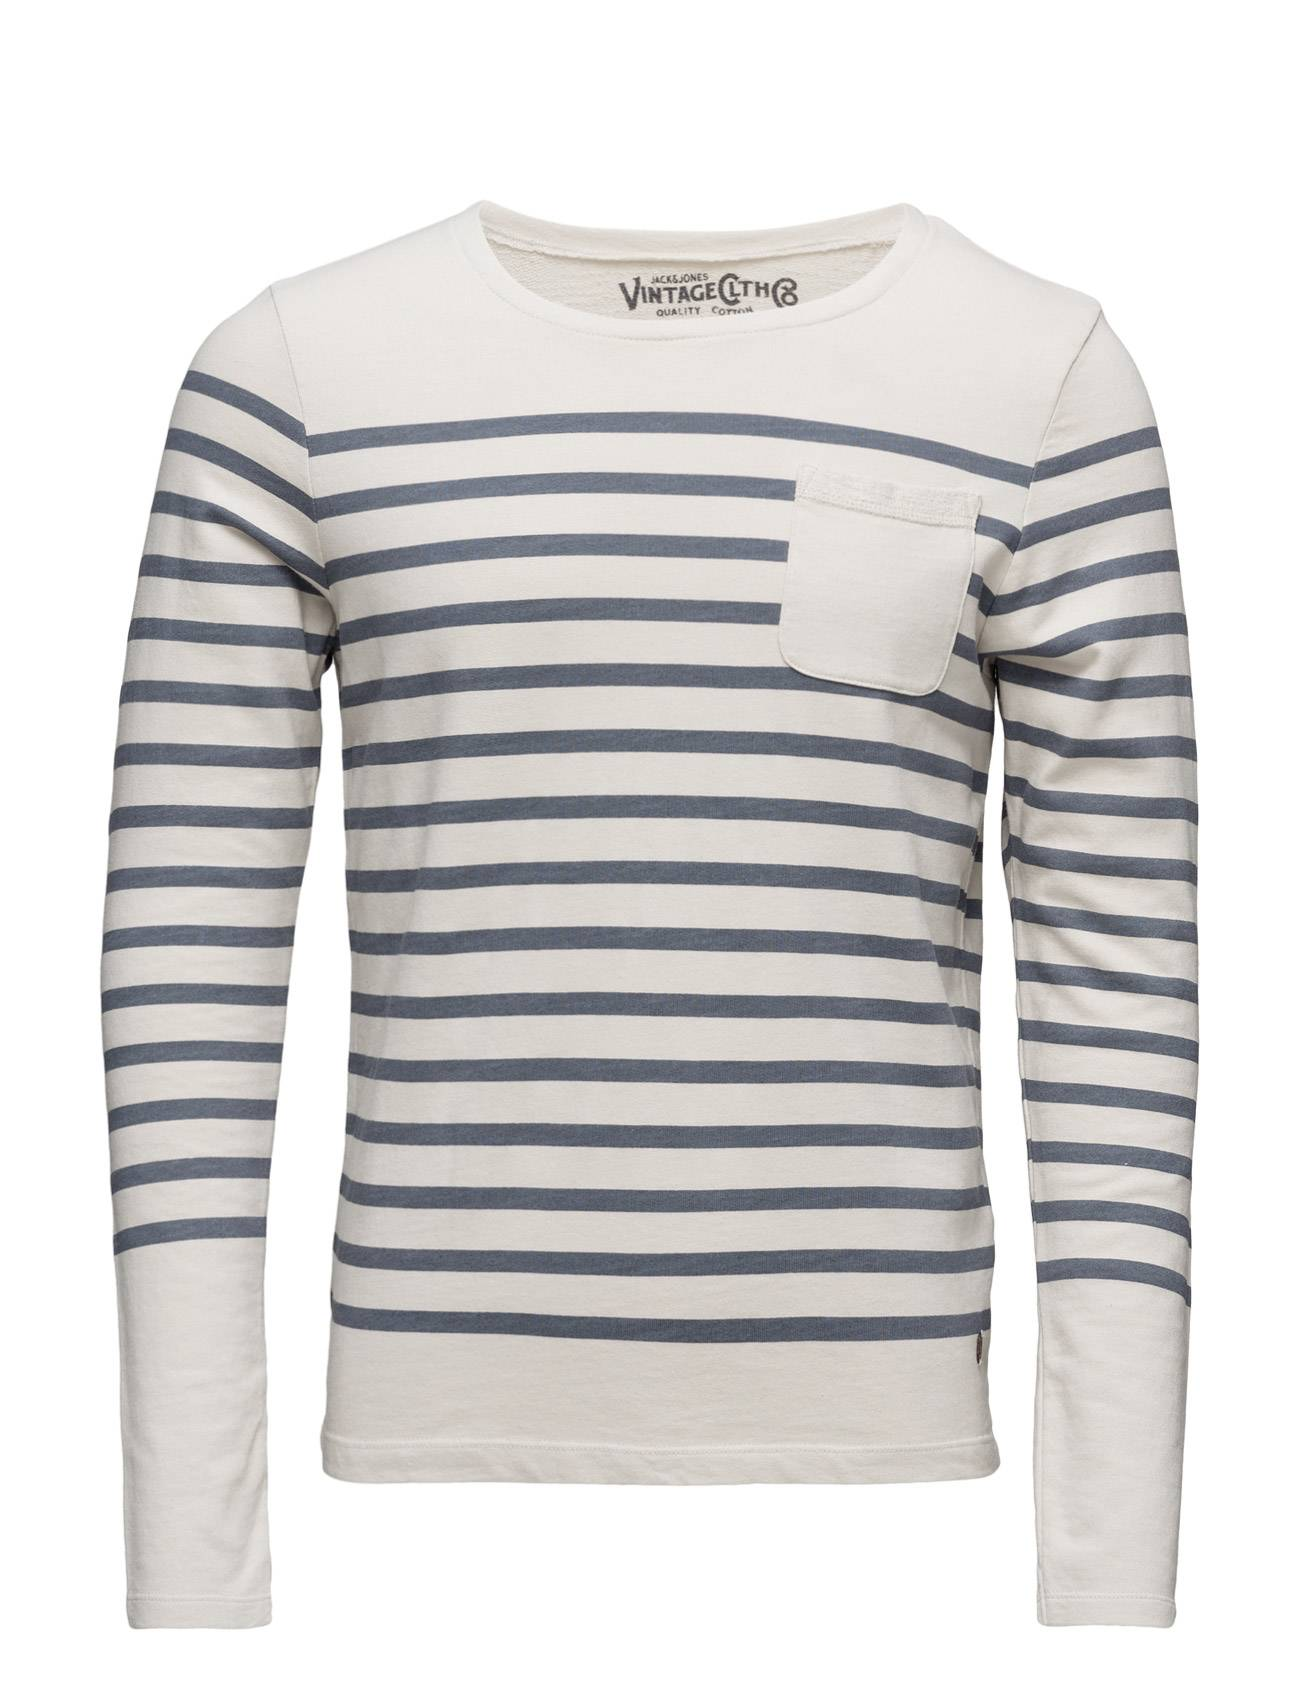 Jack & Jones Vintage Jjvfu Micha Crew Neck Sweat